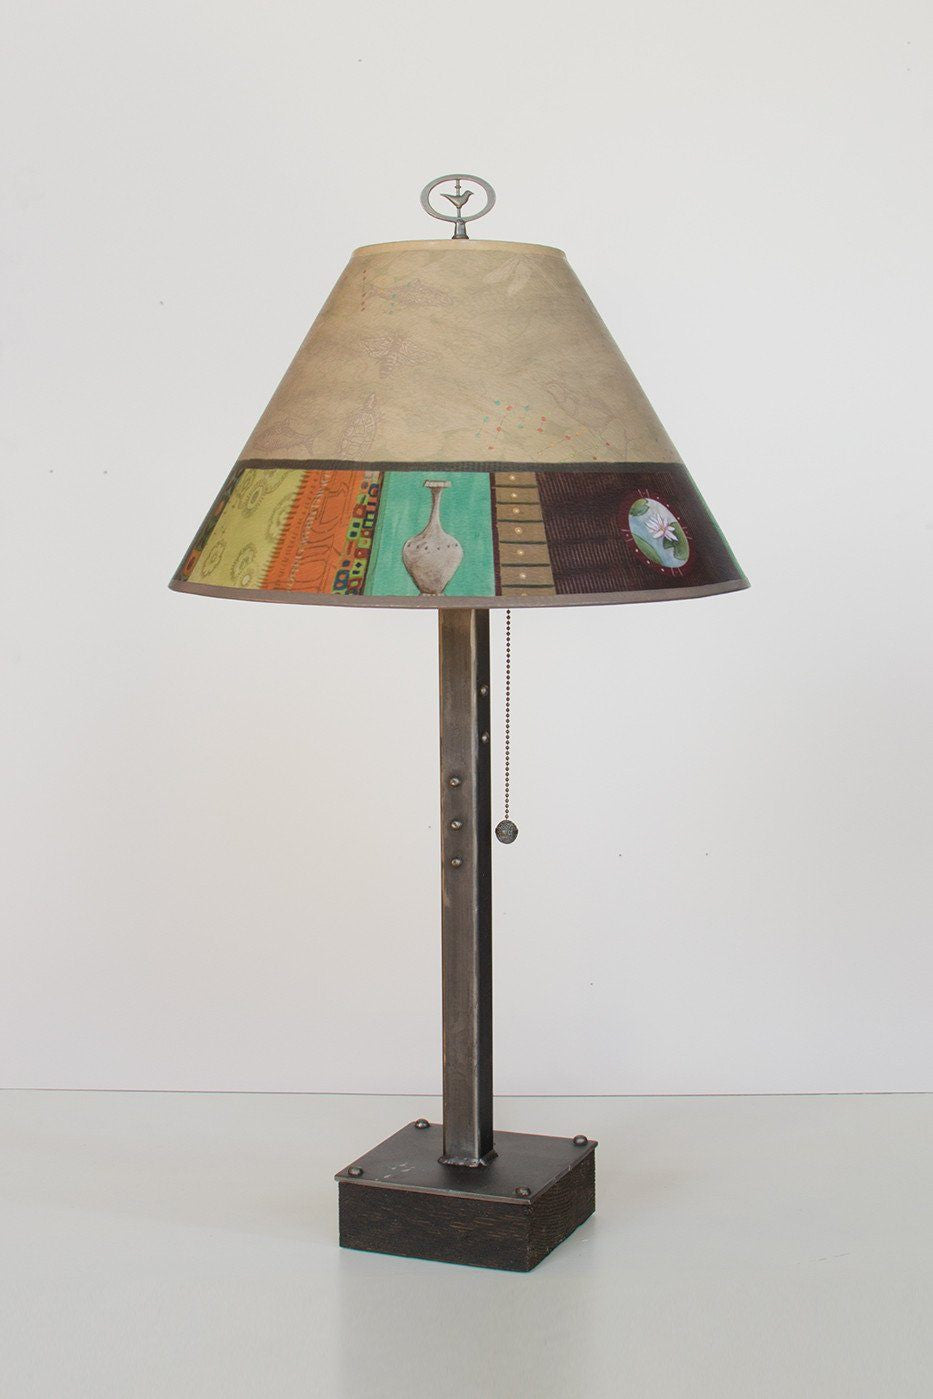 Steel Table Lamp on Wood with Medium Conical Shade in Linen Match - Lit